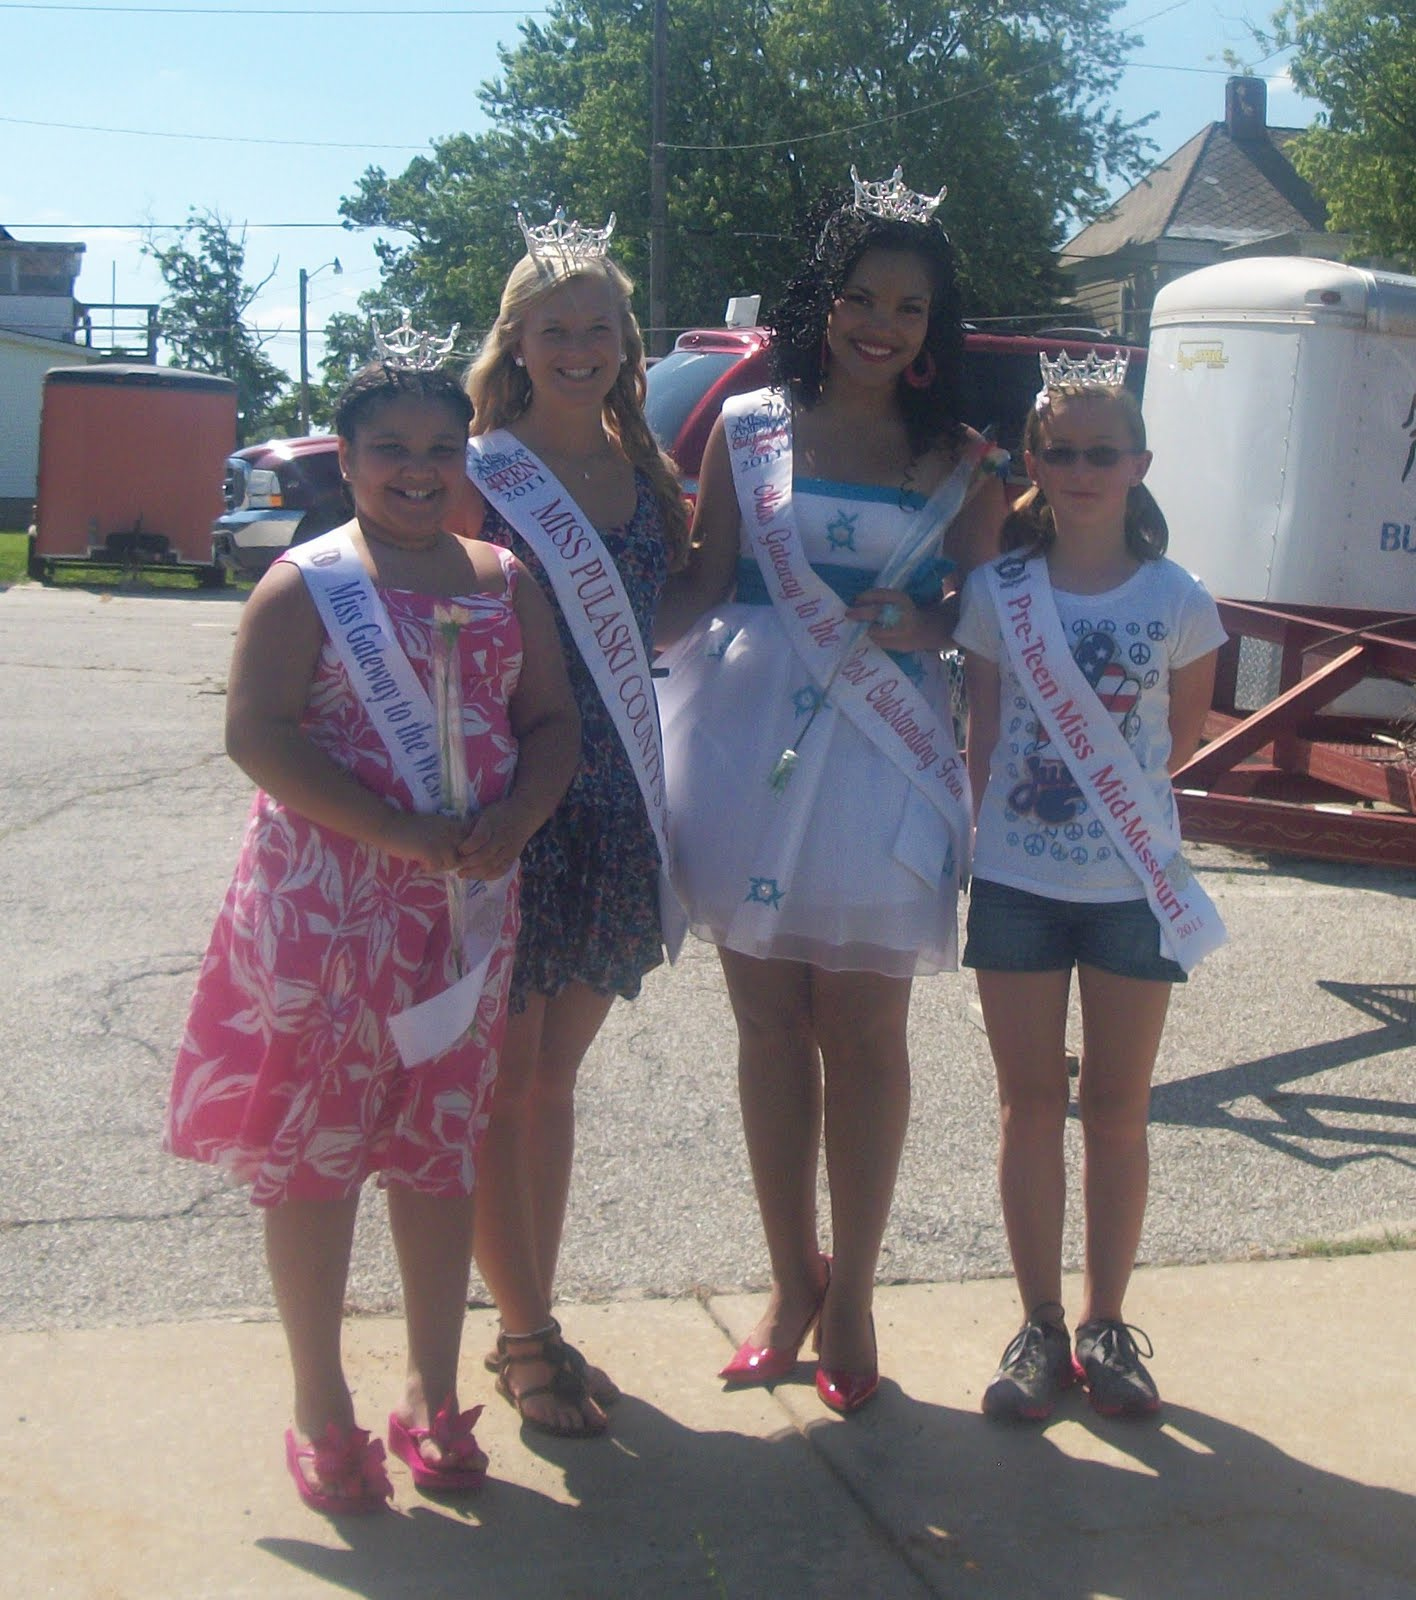 Miss missouri state fair pageant - They Included Participating In The Annual 4th Of July Parade Judging The Nemo Fair Queen Baby Contest And Performing At The Sullivan County Fair Queen